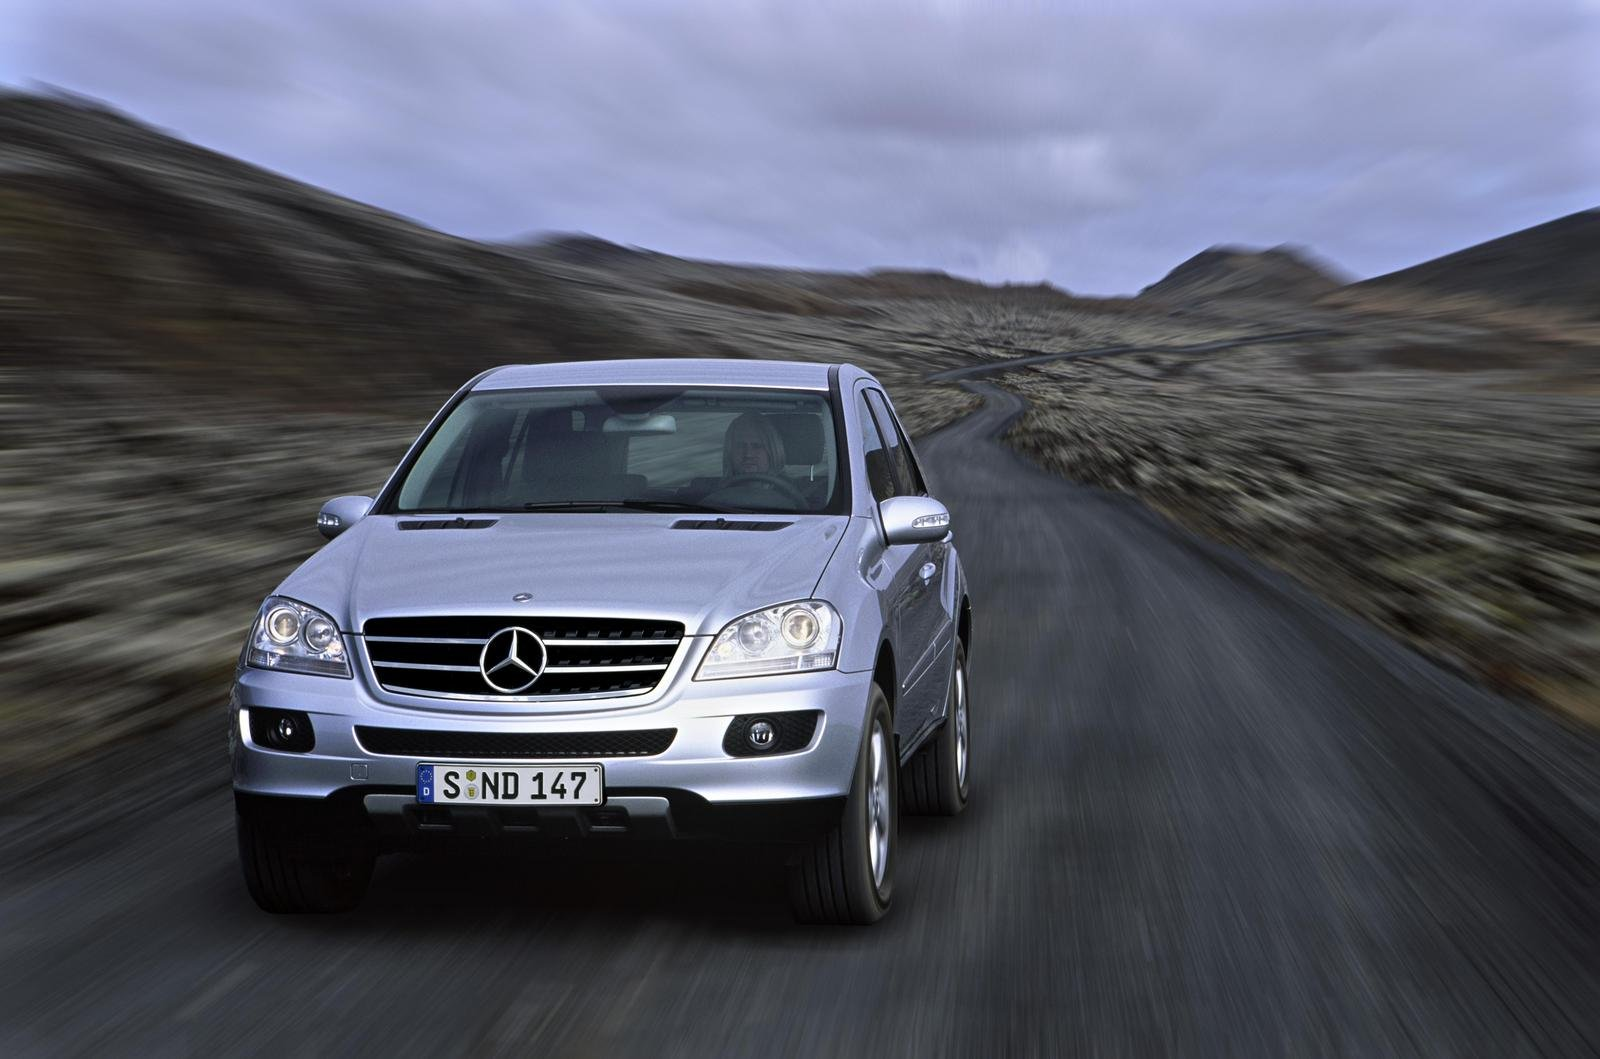 2007 mercedes m class review top speed for Mercedes benz ml 350 2007